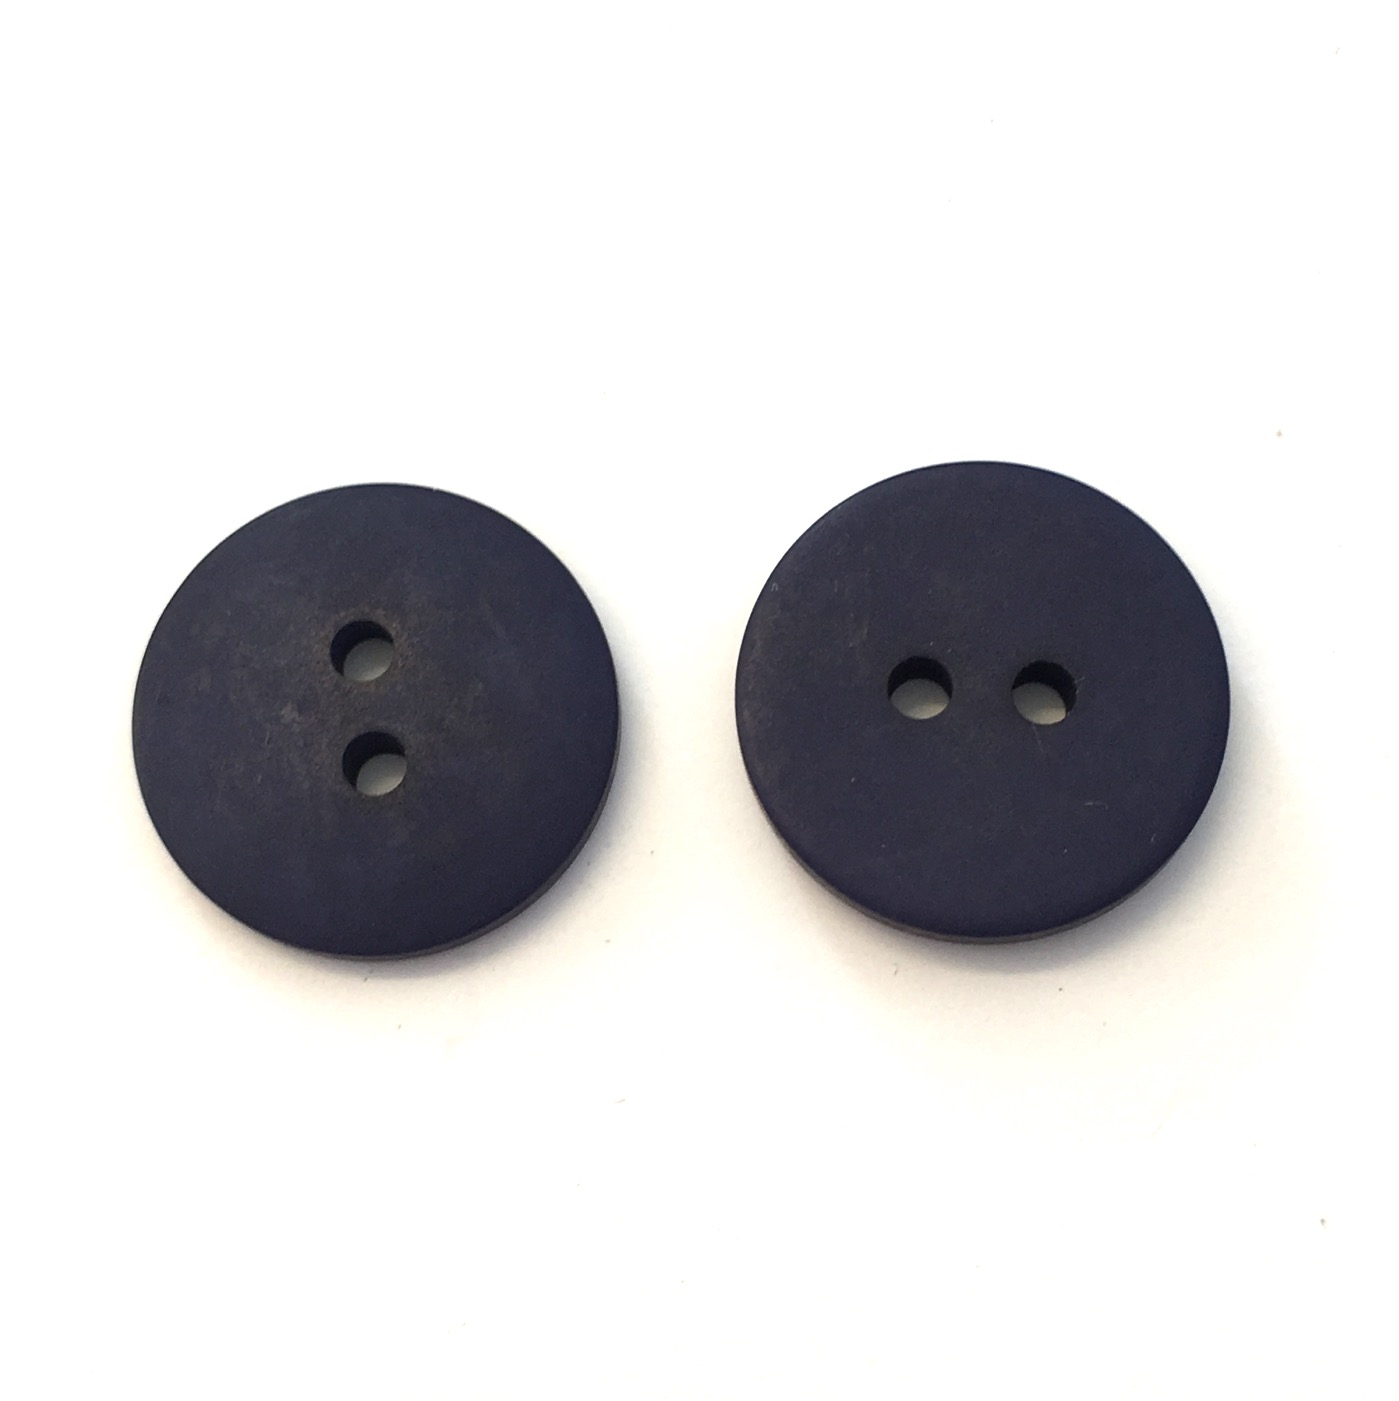 TWO HOLE BUTTONS SIZE 15mm BLACK 19mm AND 22mm RED WHITE CREAM NAVY